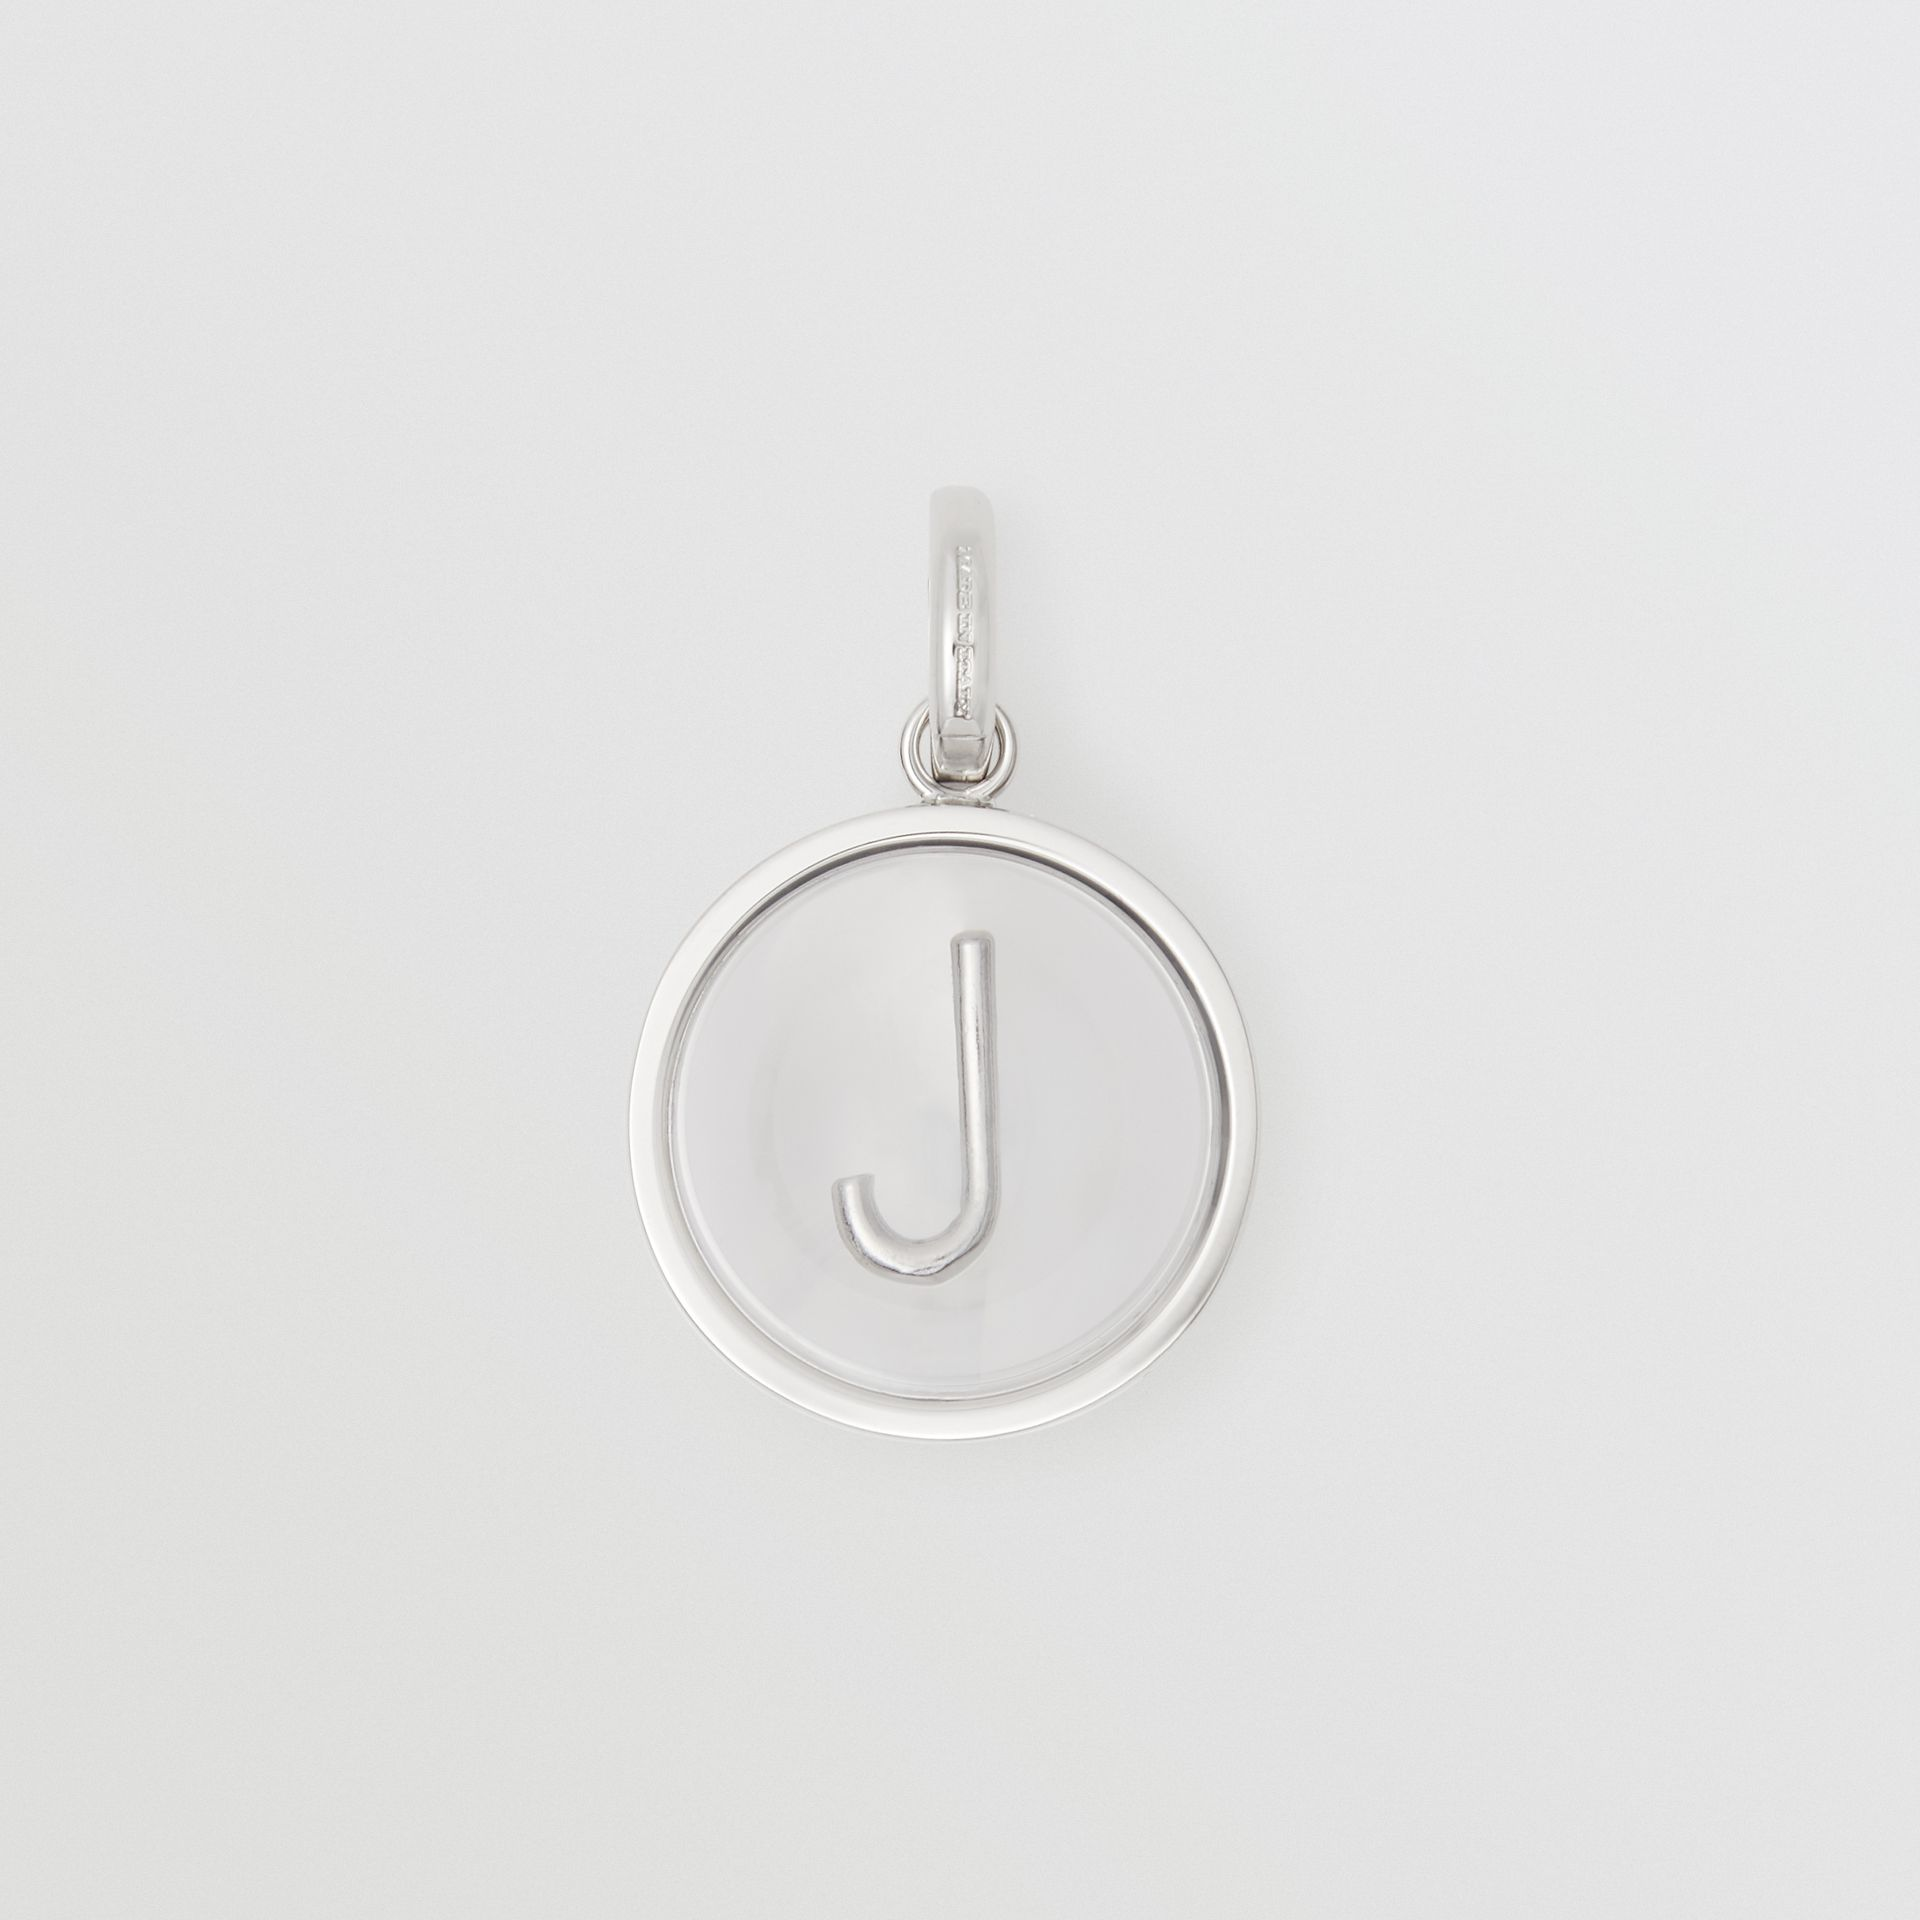 Marbled Resin 'J' Alphabet Charm in Palladio/nacre - Women | Burberry United Kingdom - gallery image 0